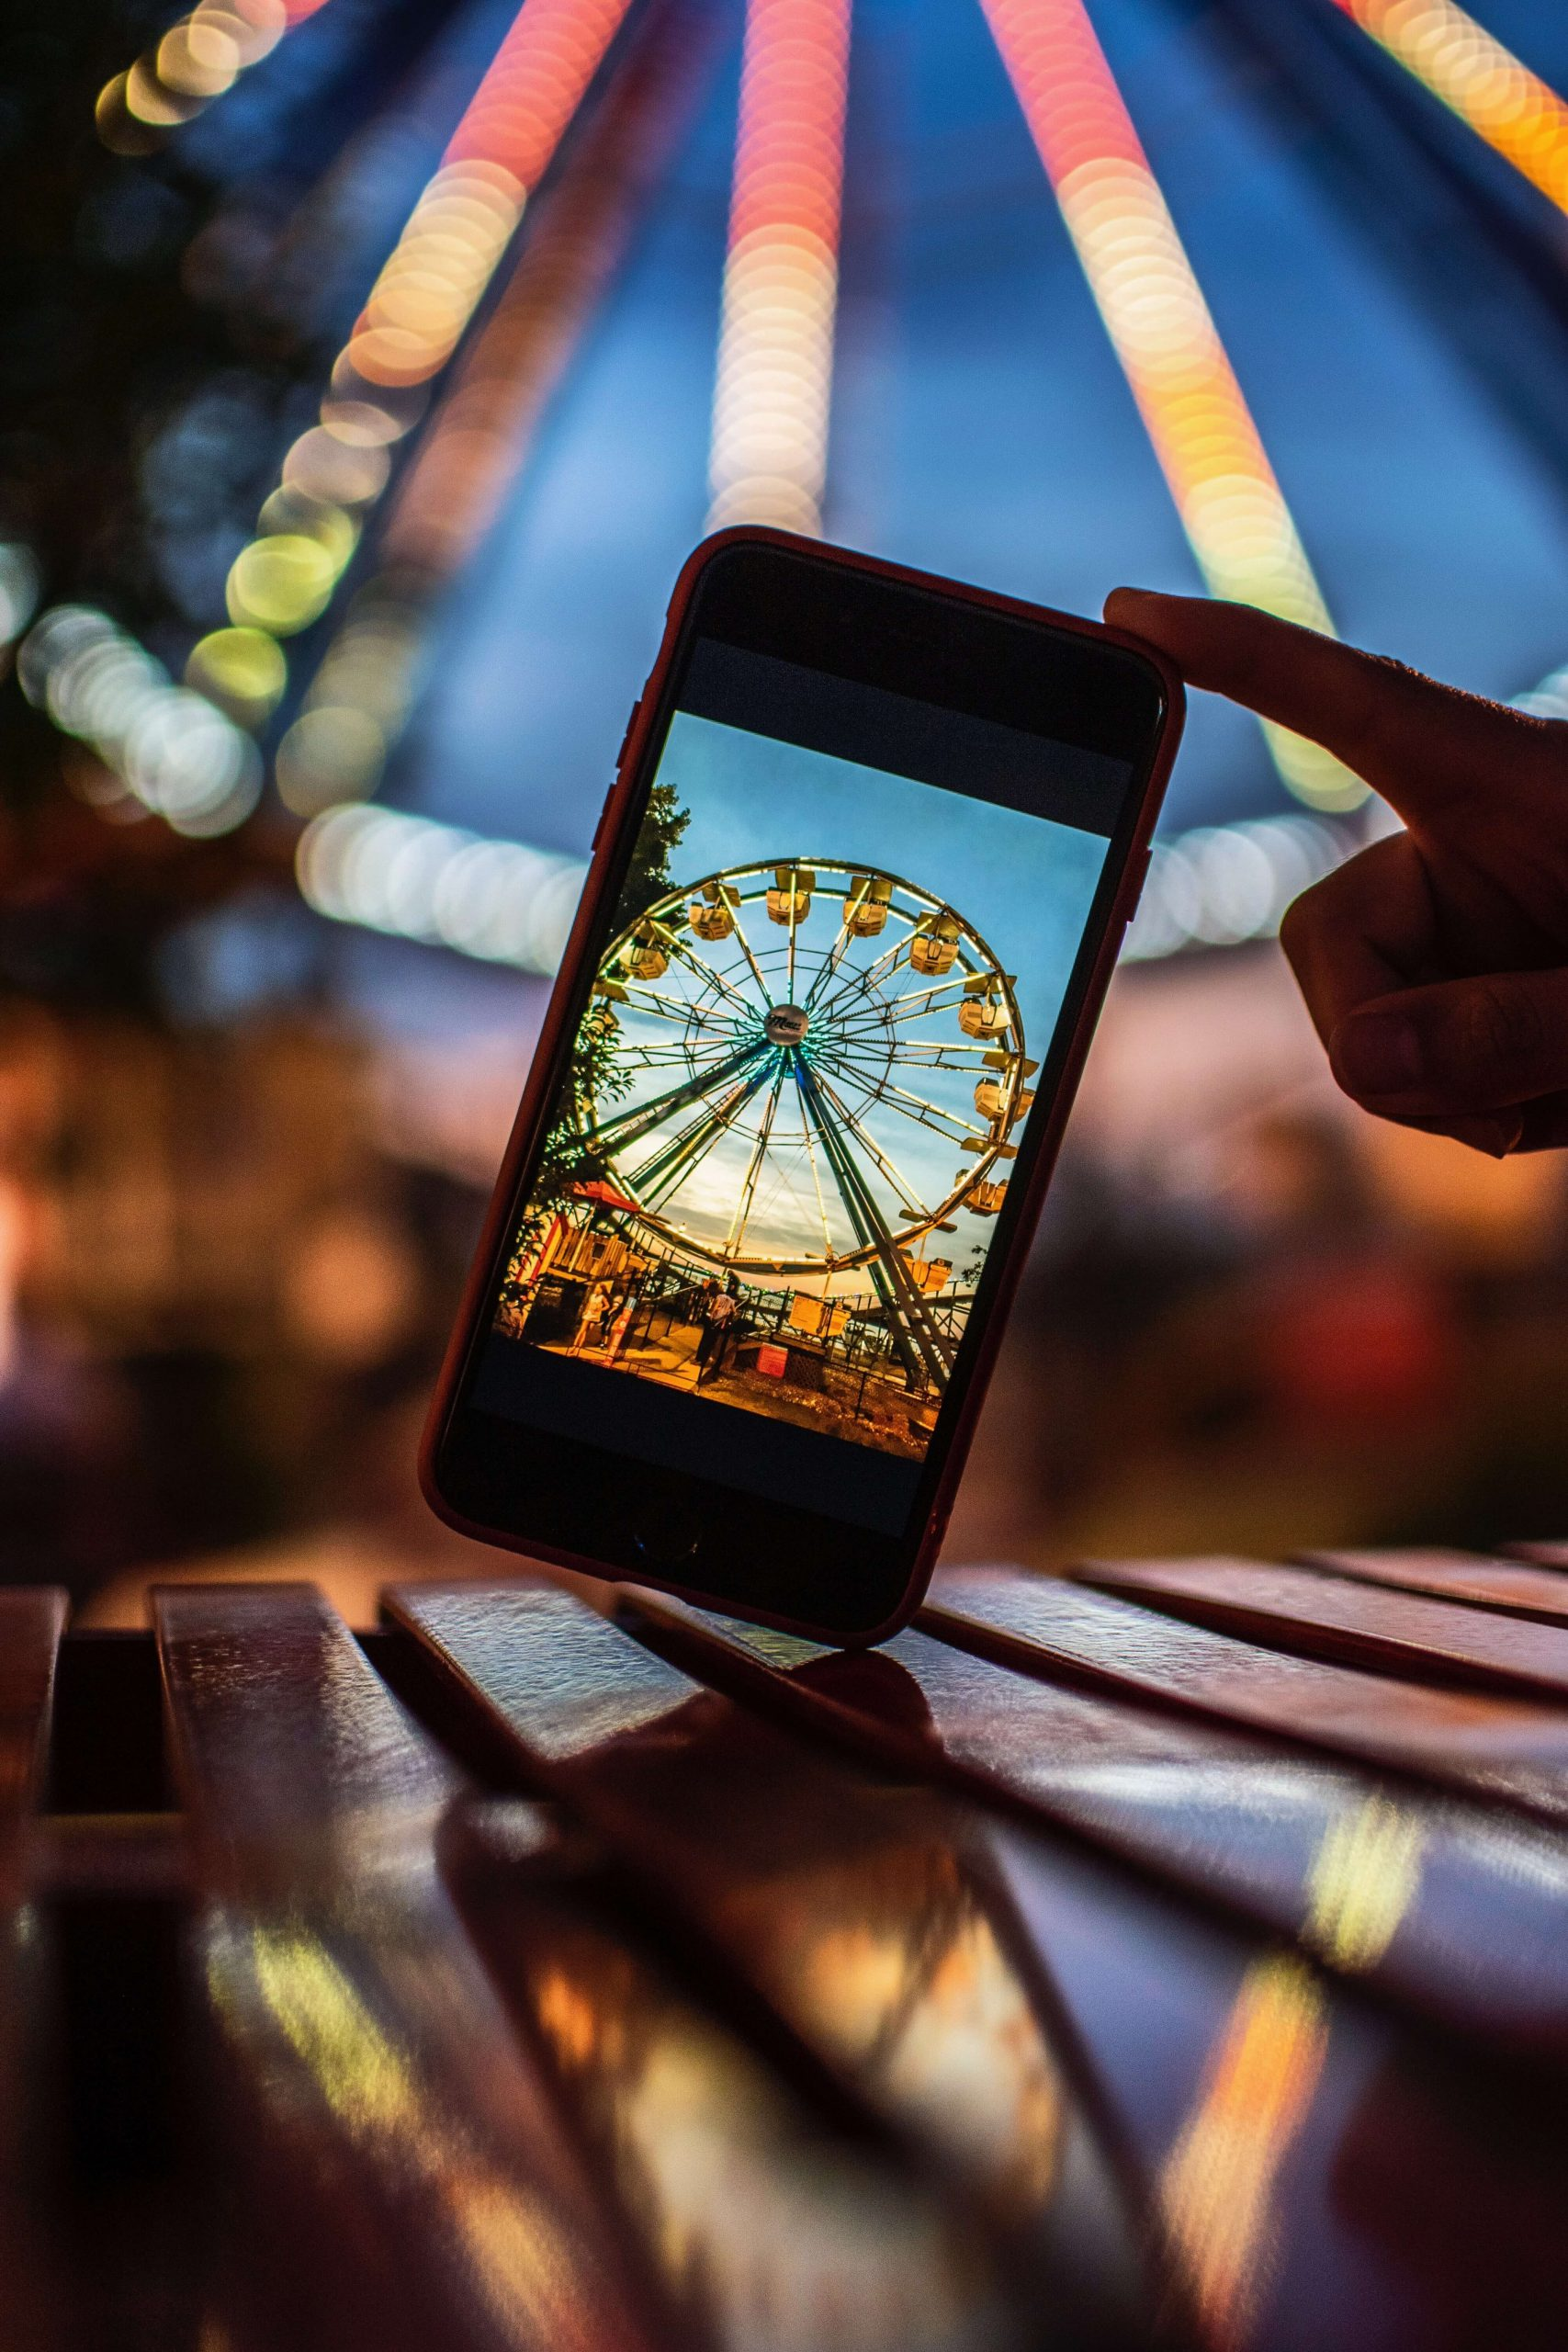 An artist takes a picture of a Ferris wheel